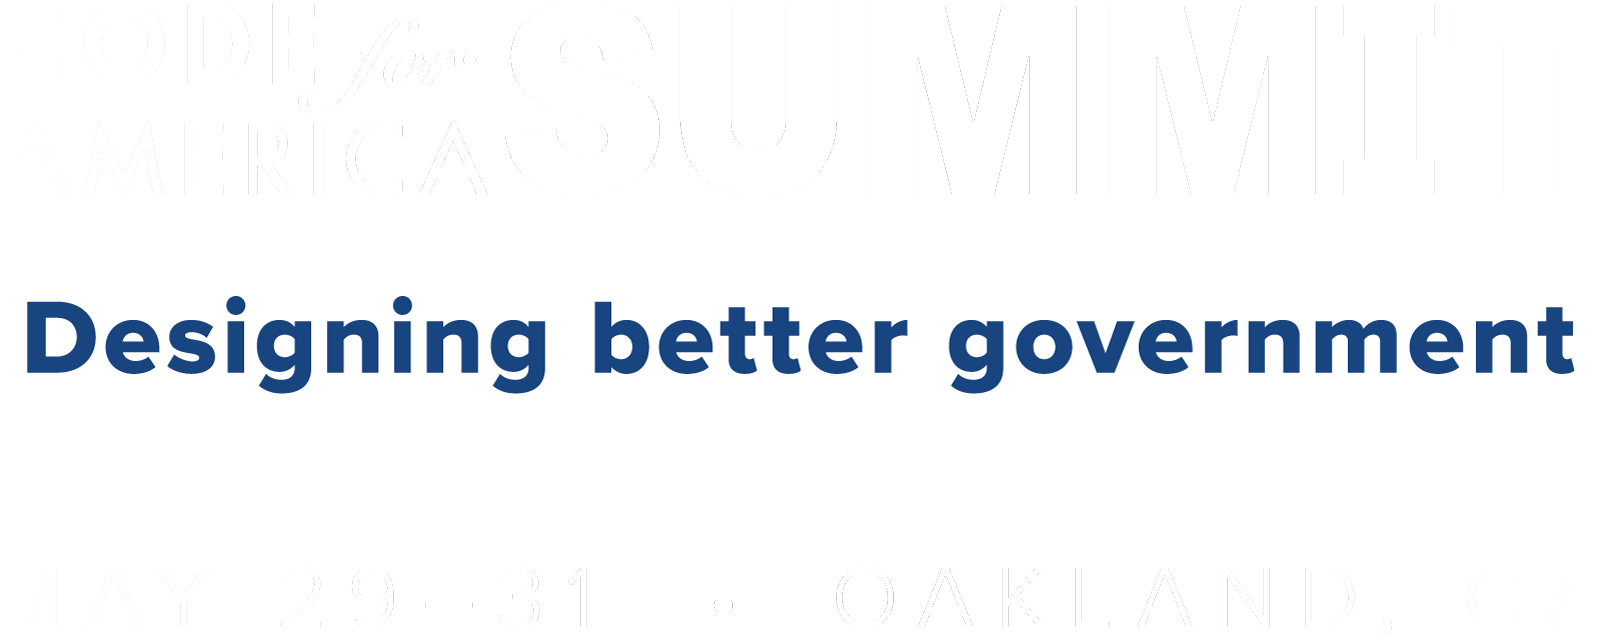 Code for America Summit 2019 - Code for America